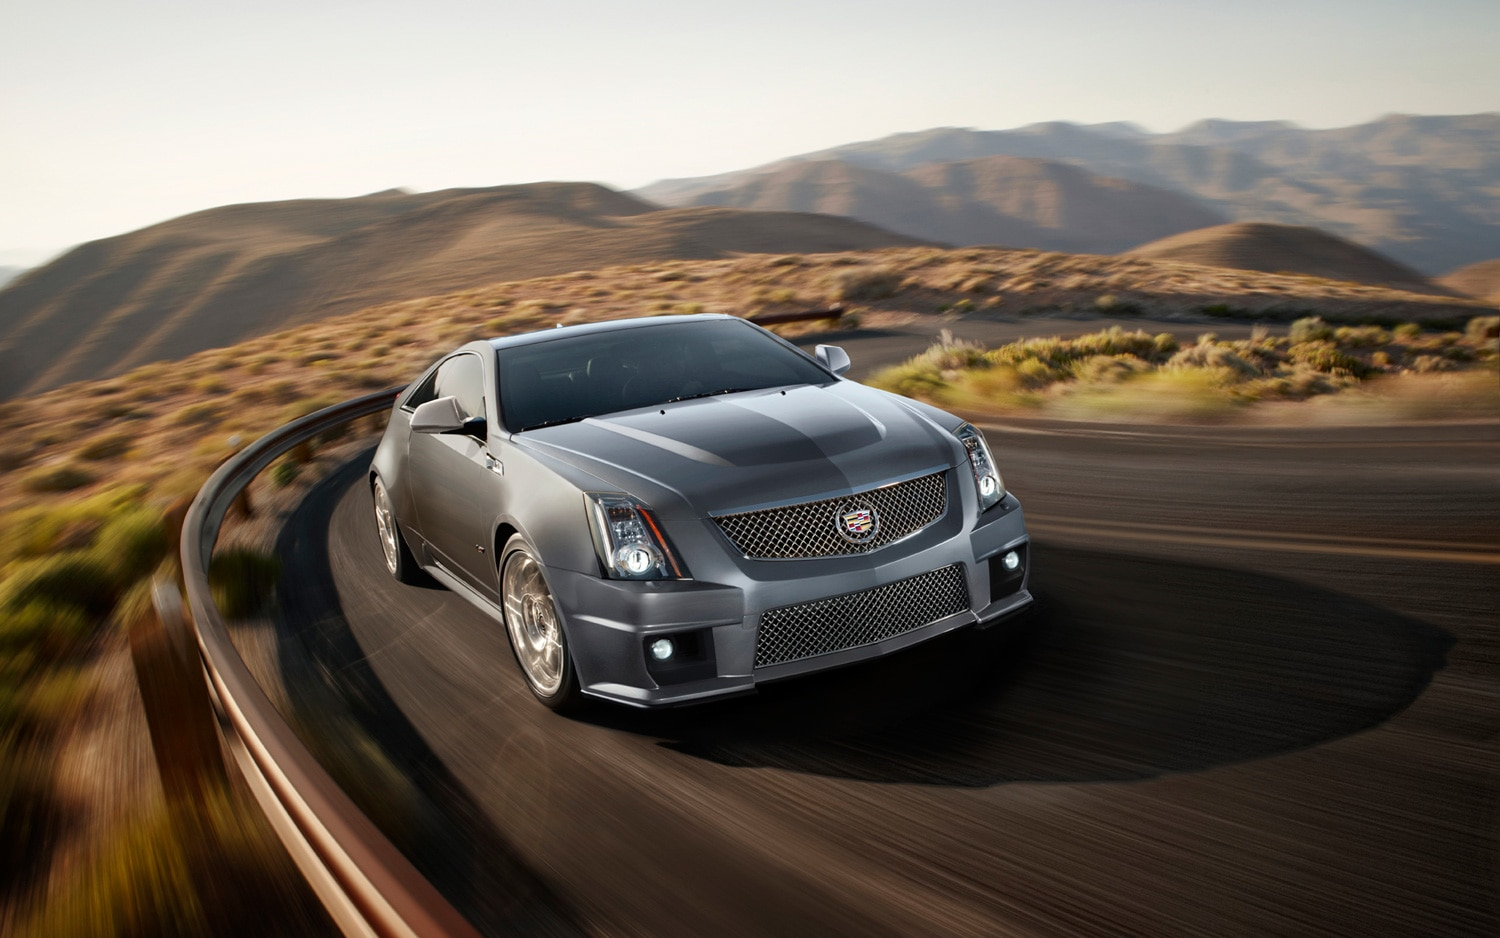 Should Cadillac Build A 2014 CTS Coupe